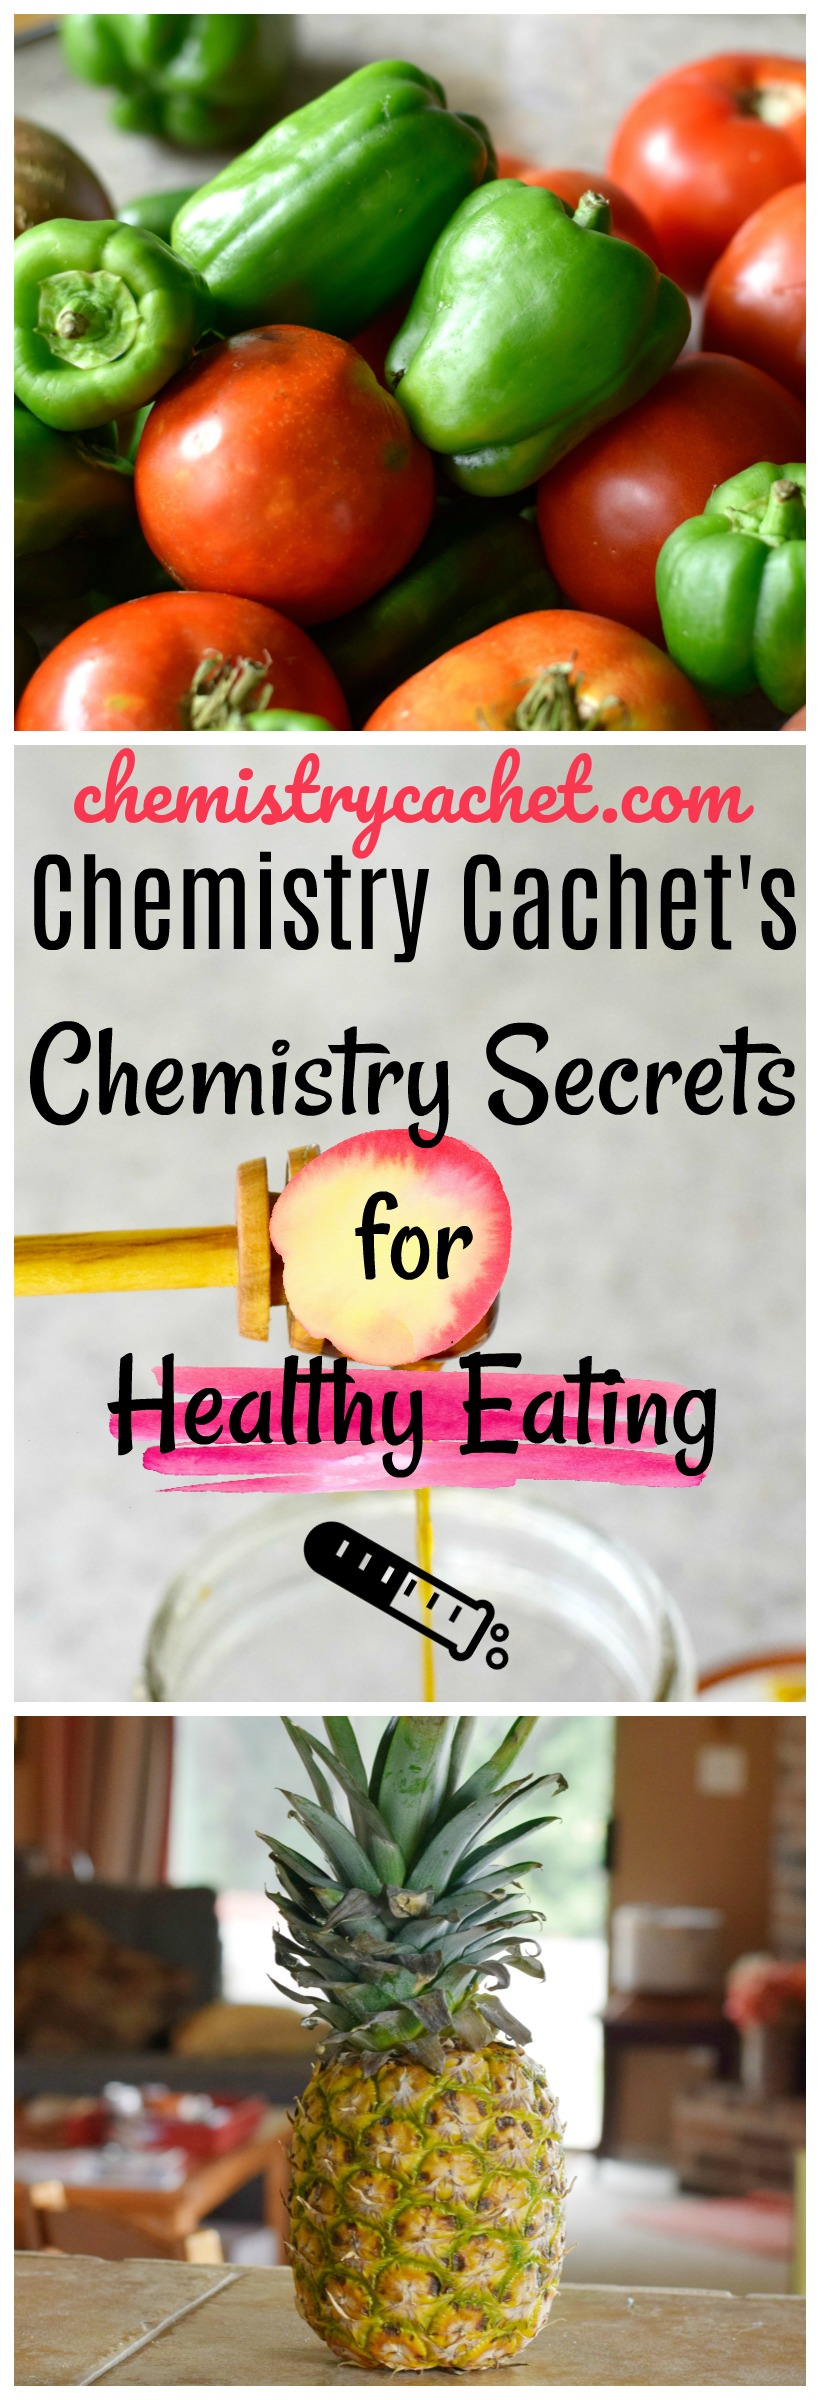 Chemistry Cachet's chemistry secrets for healthy eating on chemistrycachet.com